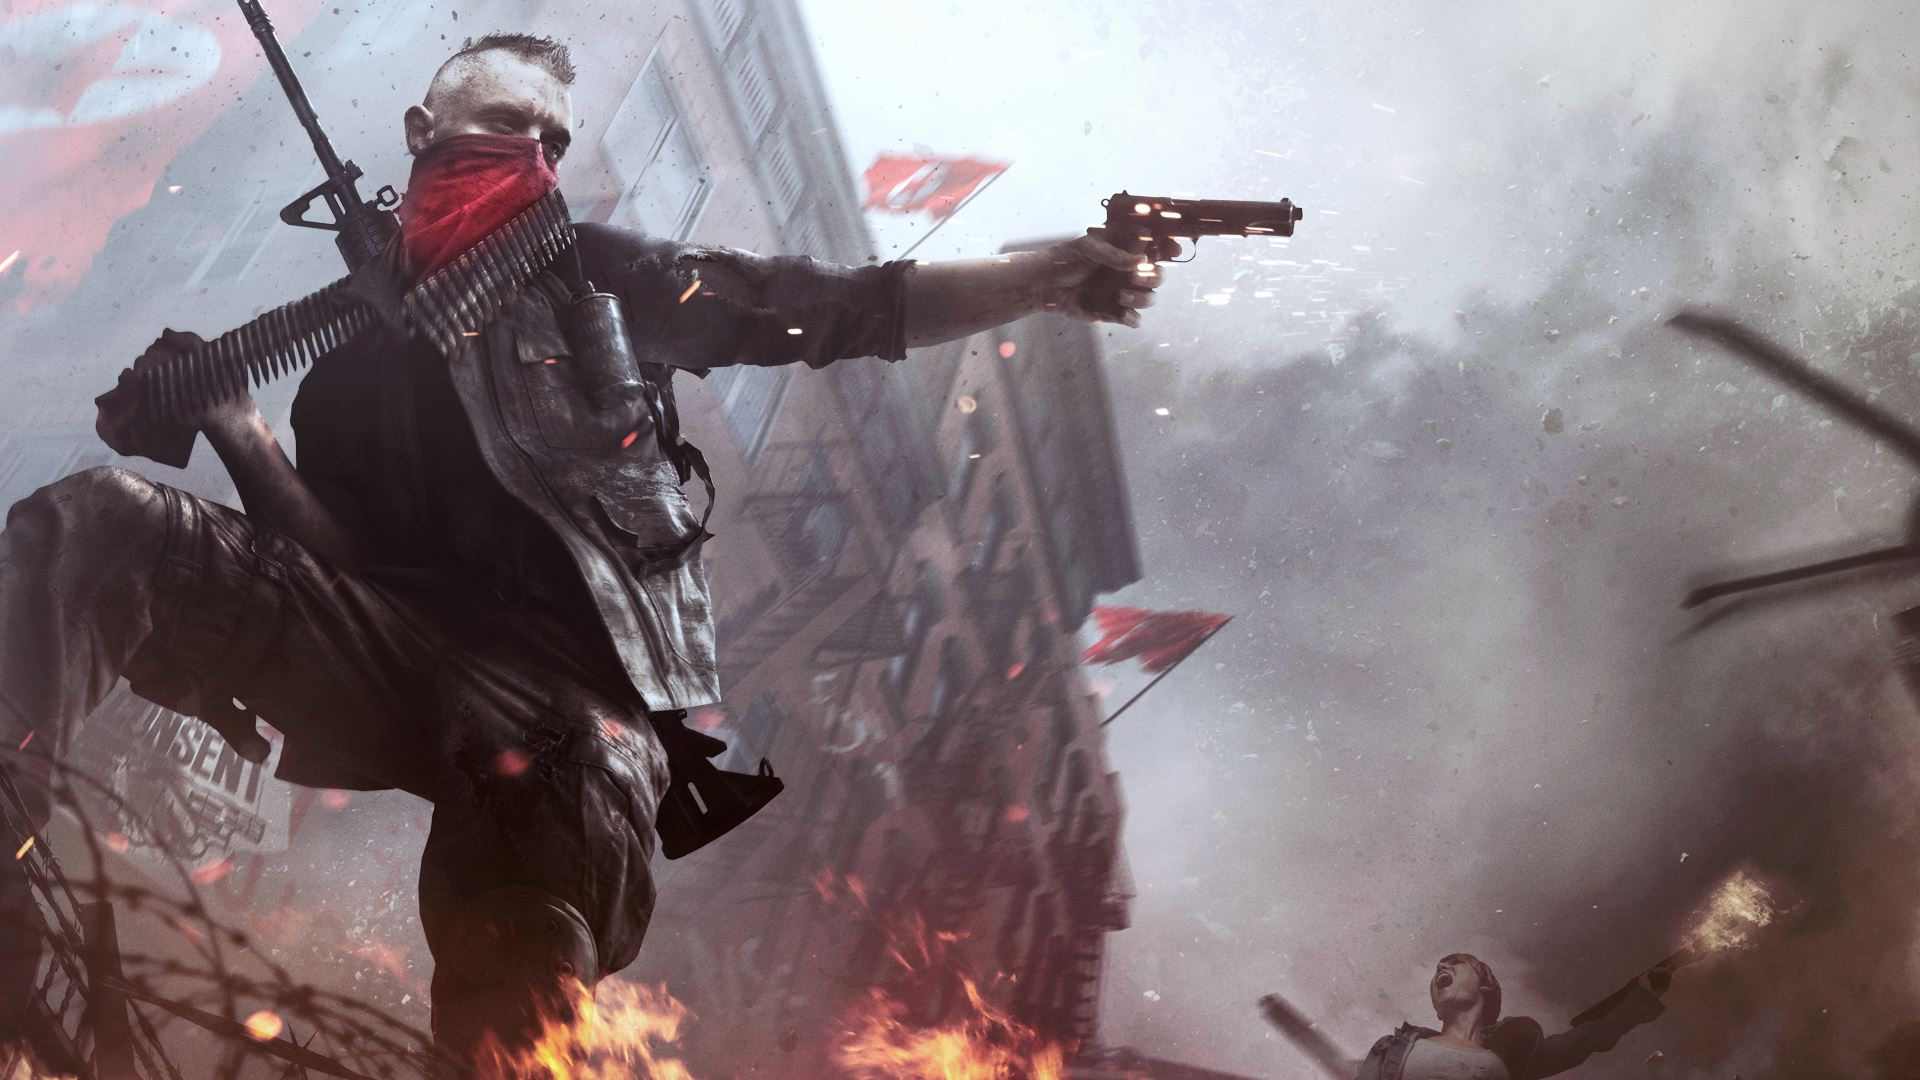 https://assets.vg247.com/current//2016/02/homefront_revolution_art.jpg